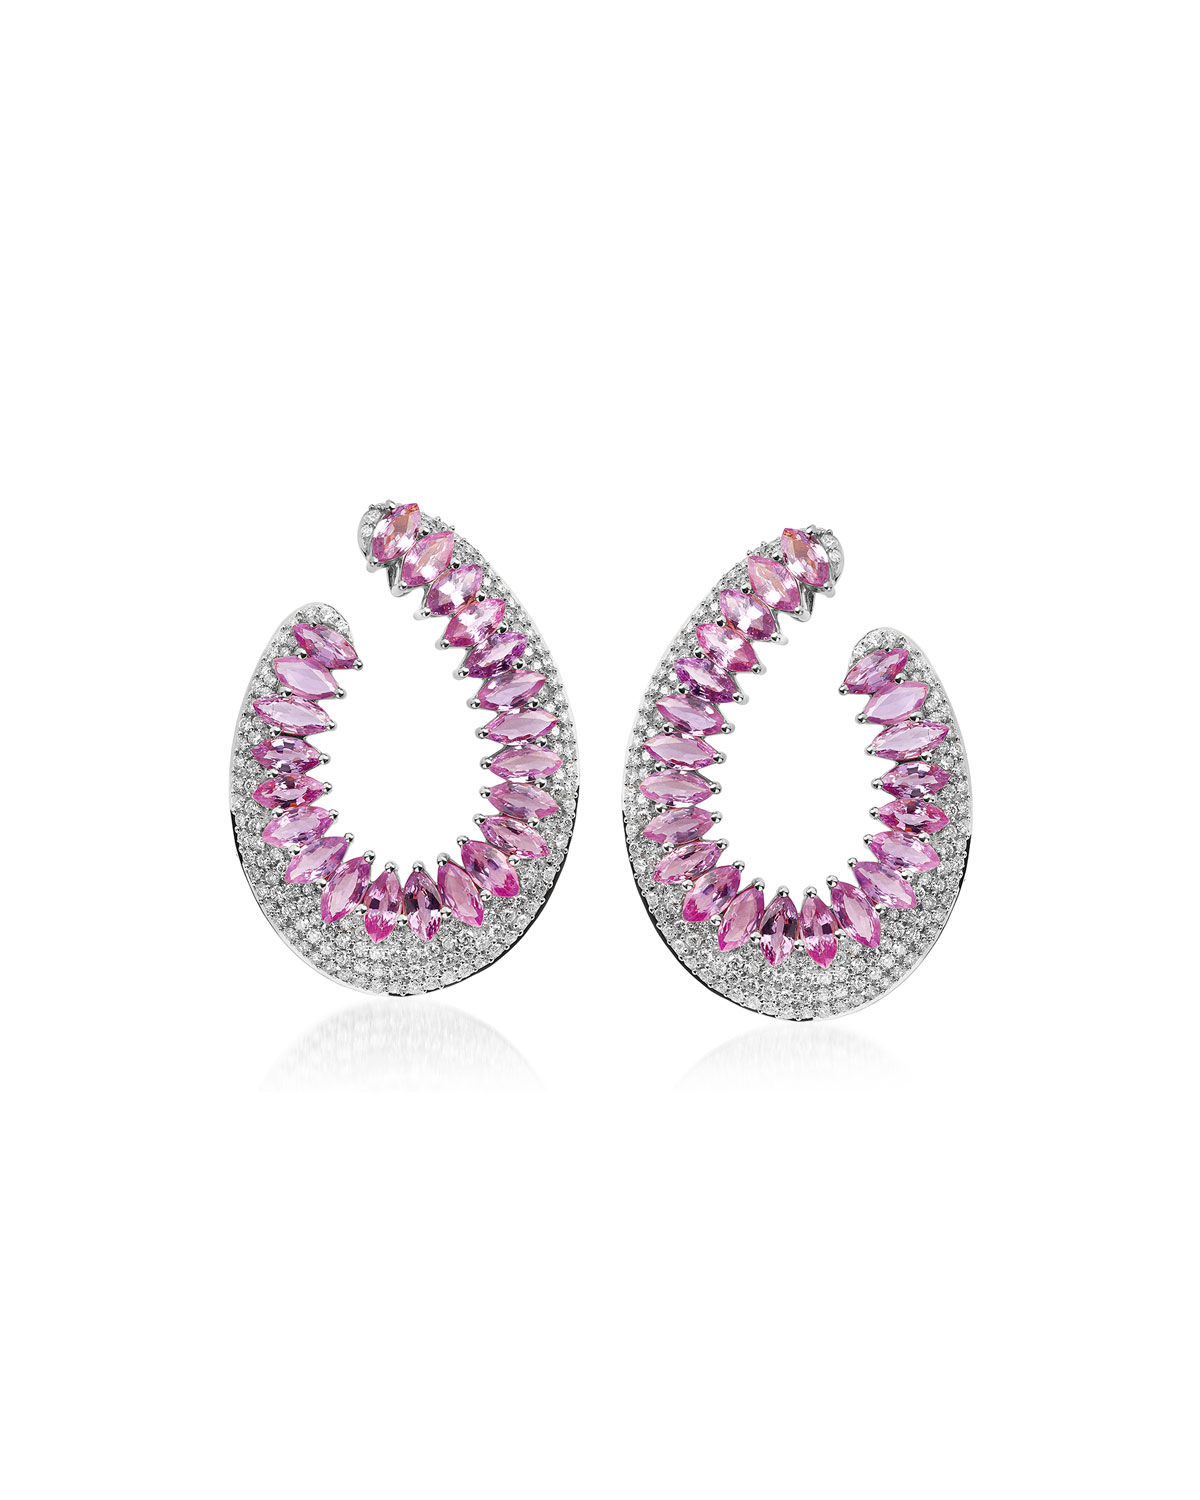 Mirage 18k White Gold Pink Sapphire and Diamond Loop Earrings